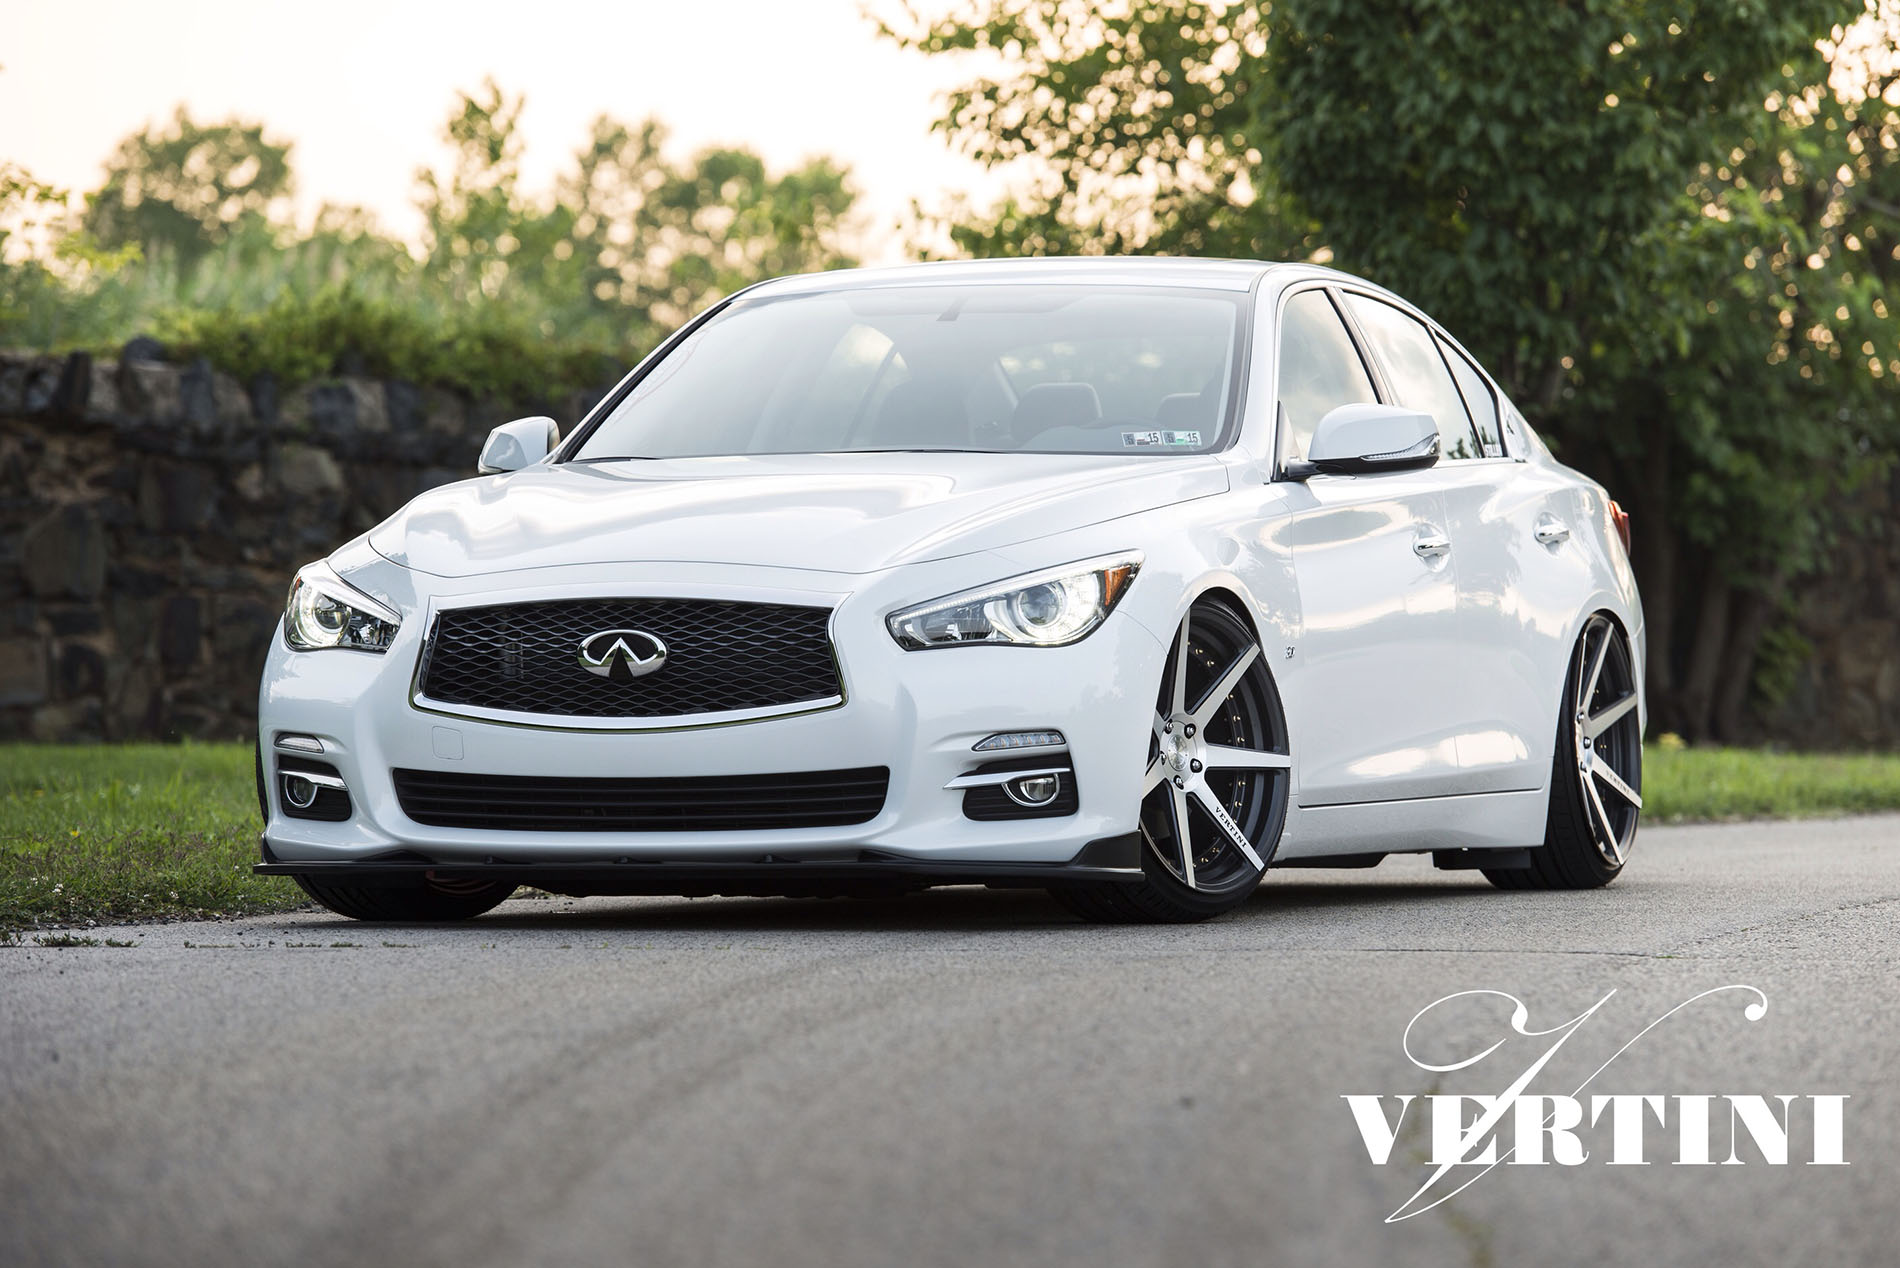 Vertini Dynasty Slate Grey Machined on Infiniti Q50